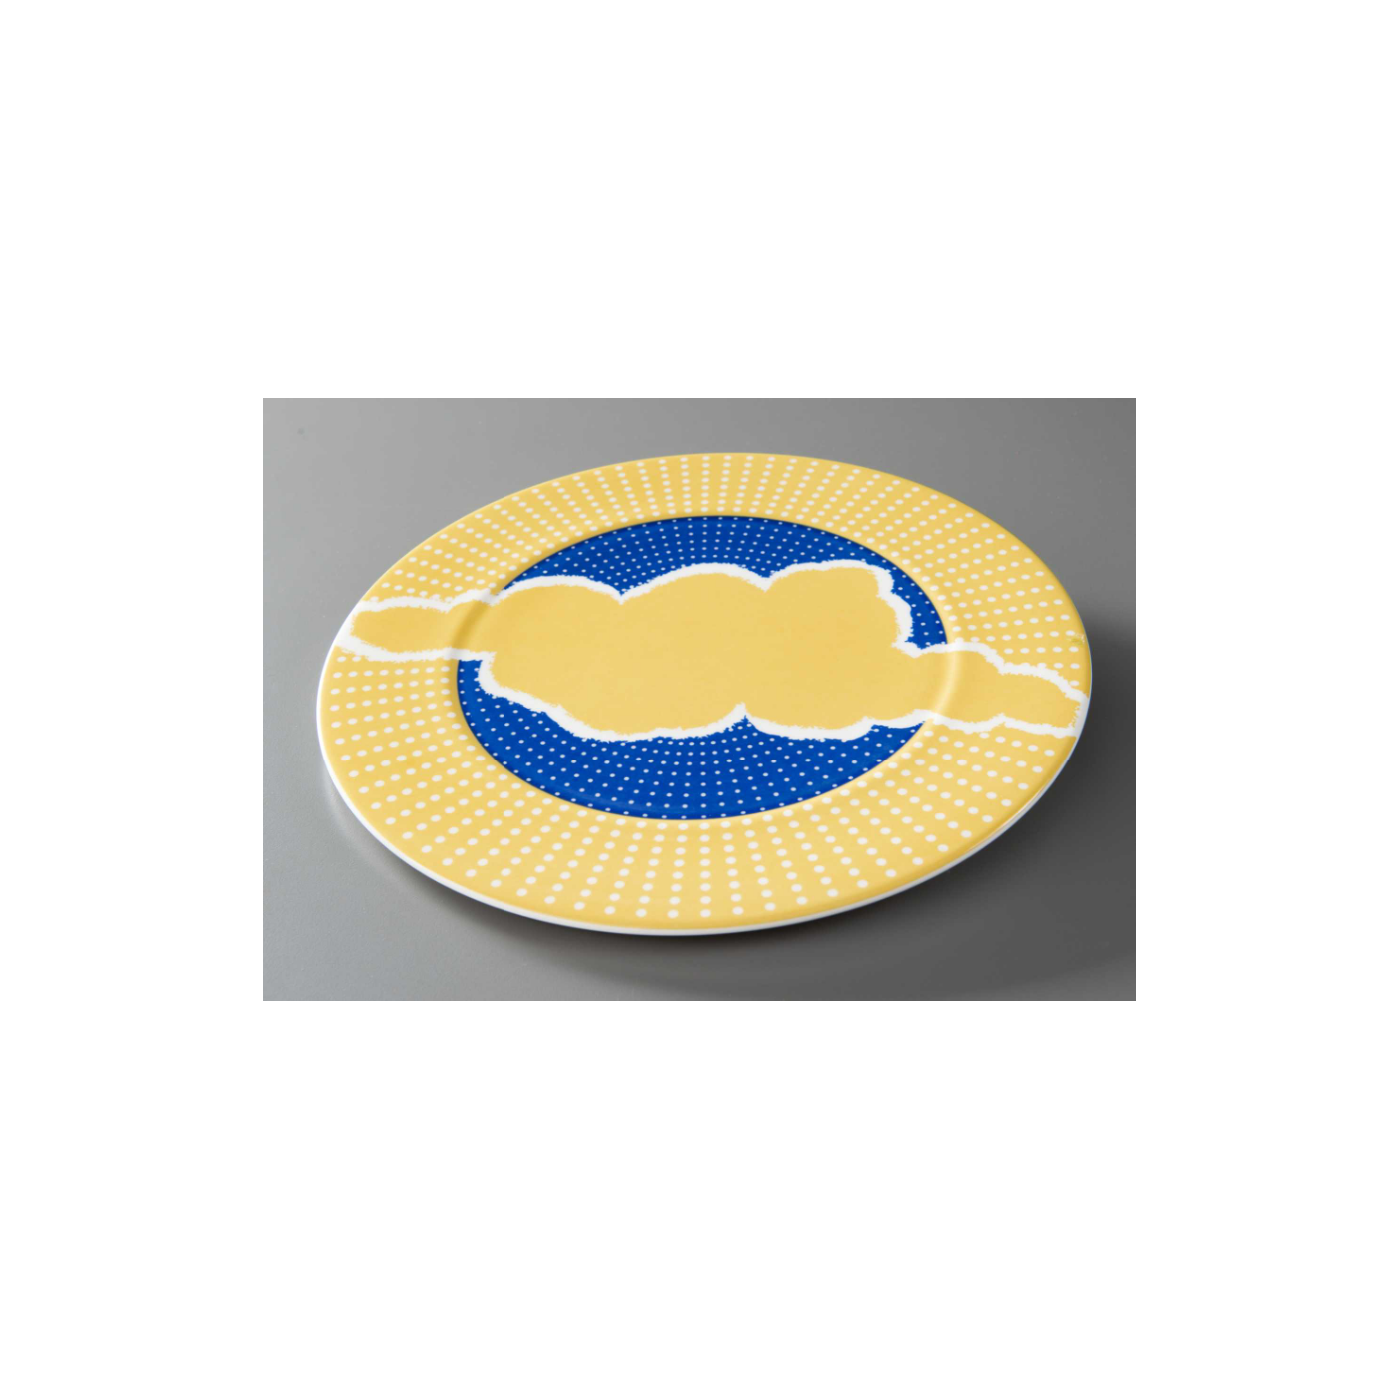 Plate charger designed for the Windows on the World restaurant. The charger is blue and yellow with a yellow cloud motif and small white dots that radiate from the center.